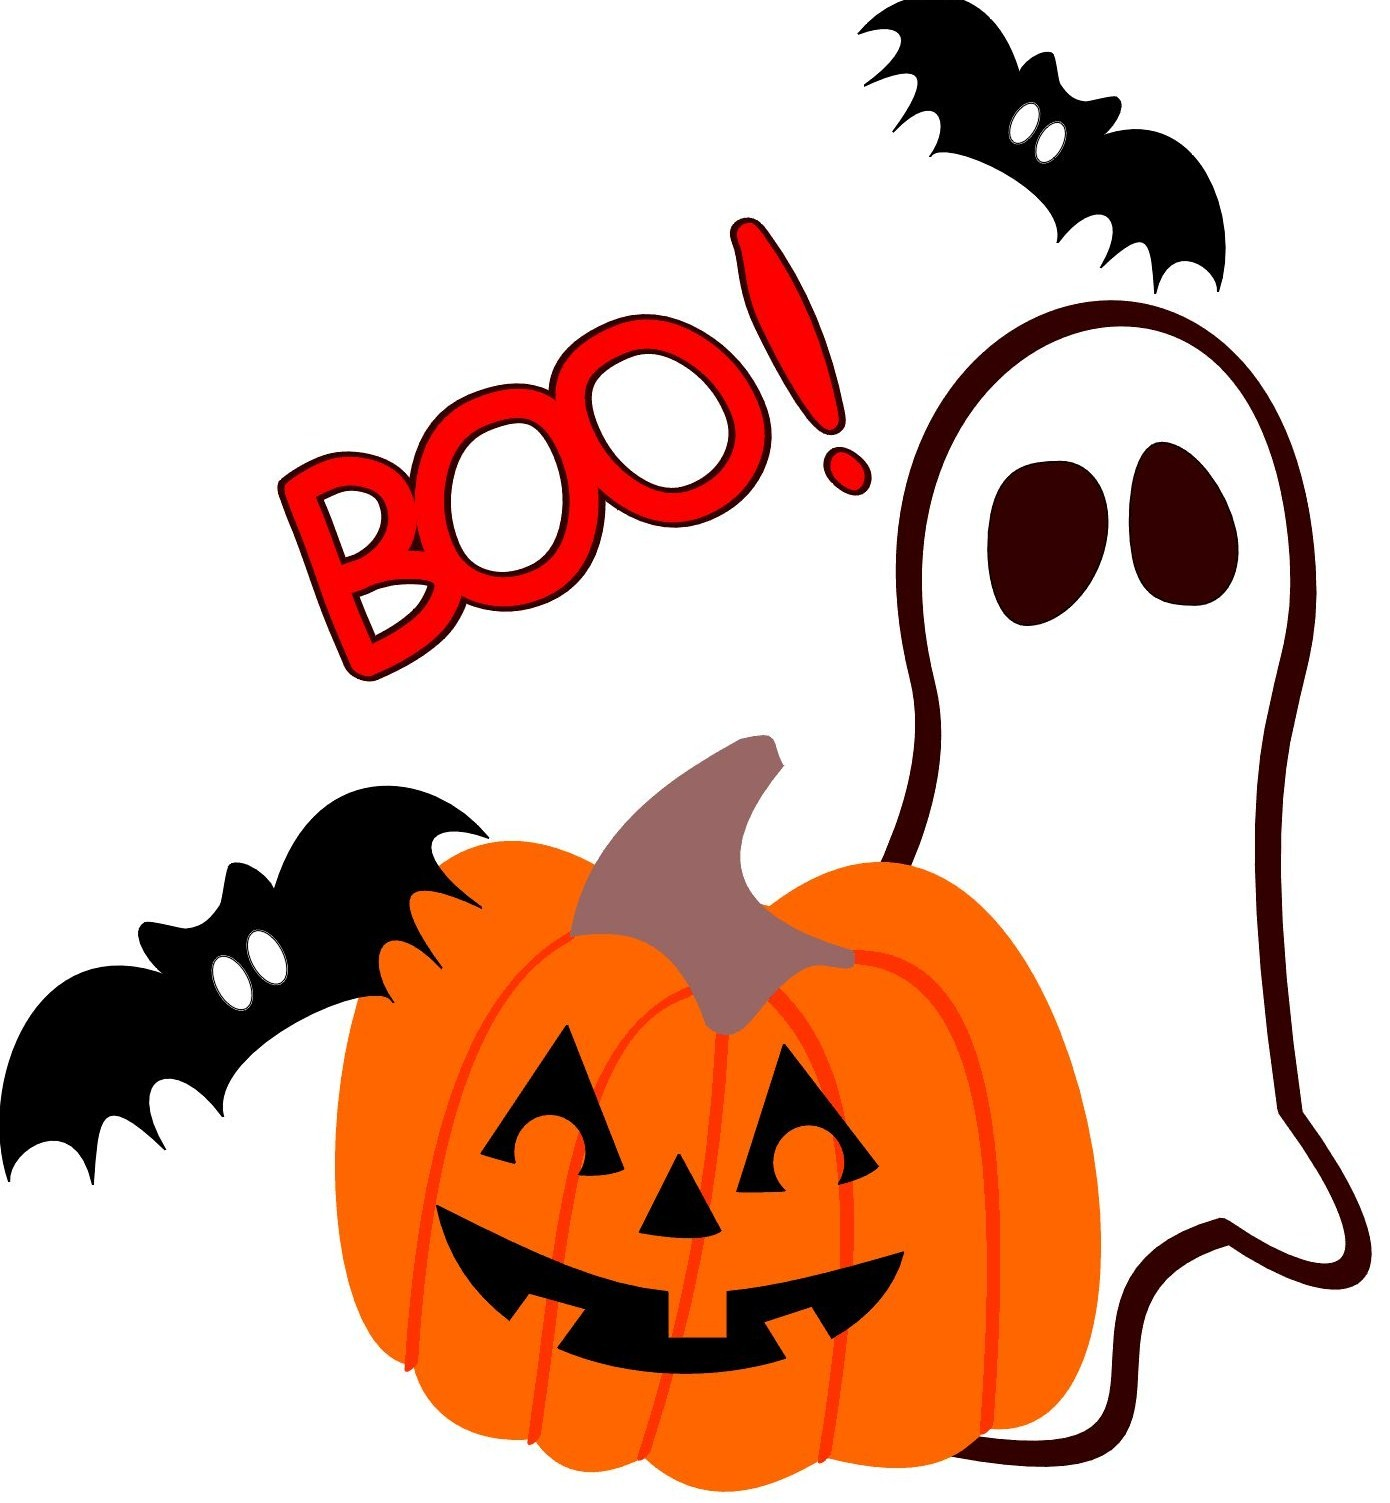 Month of october clipart free clipart images image 2